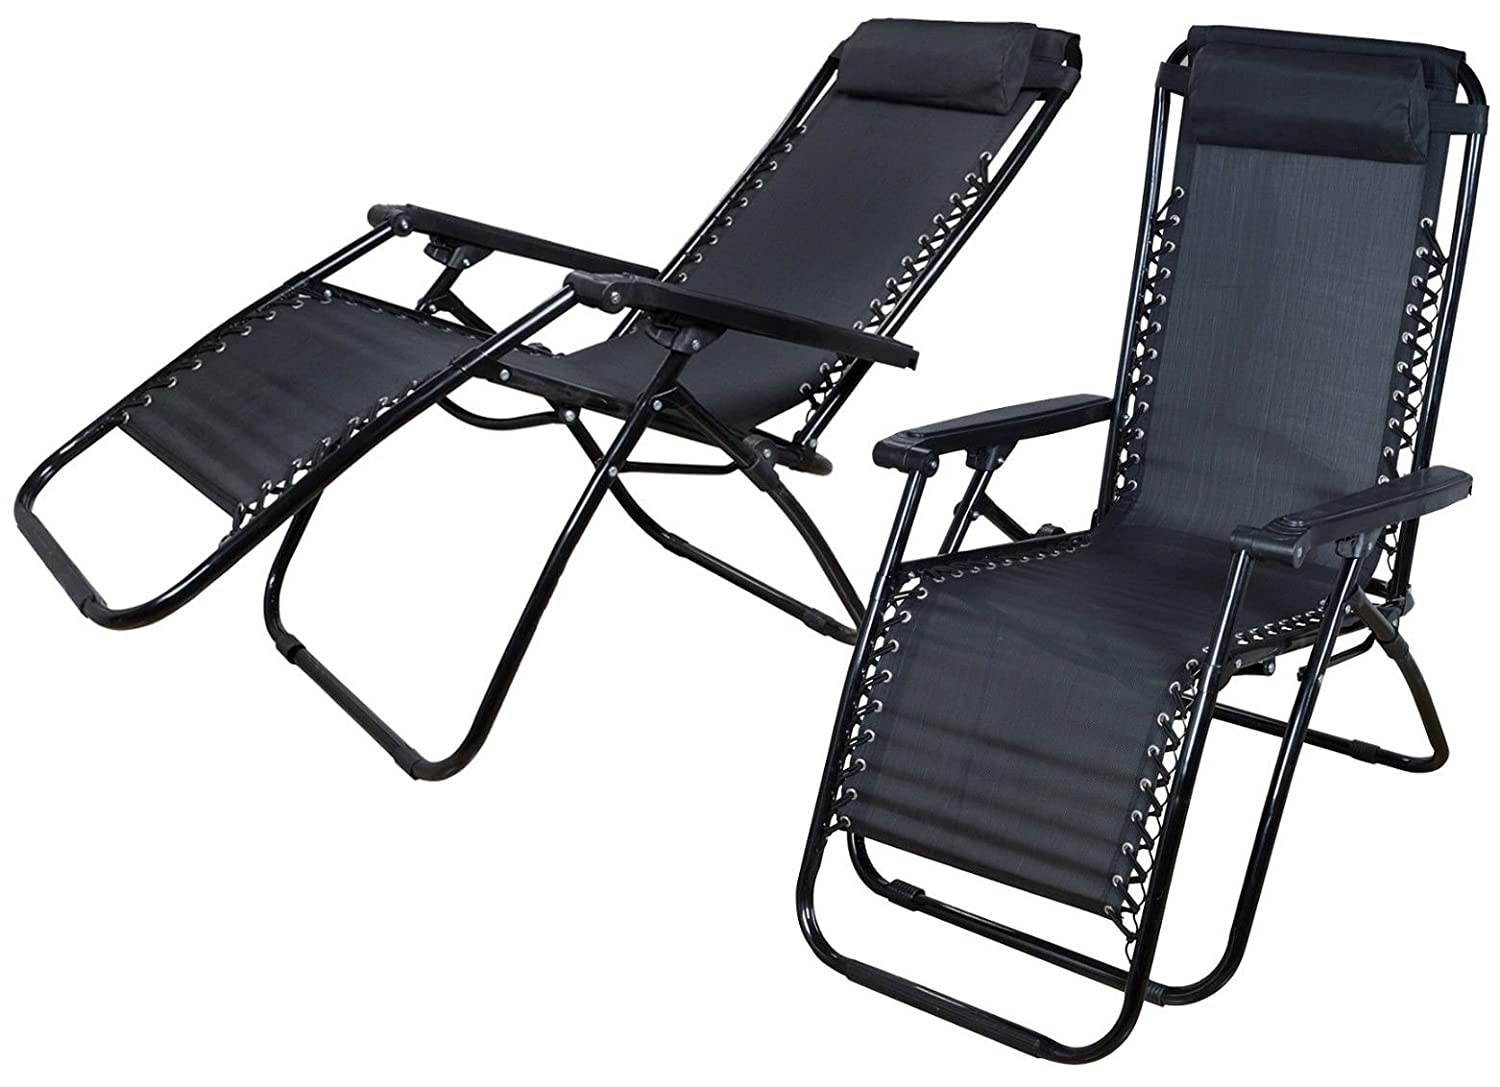 Globe House Products GHP Set of 2 Black Ergonomic Zero Gravity Patio Lounger Chair